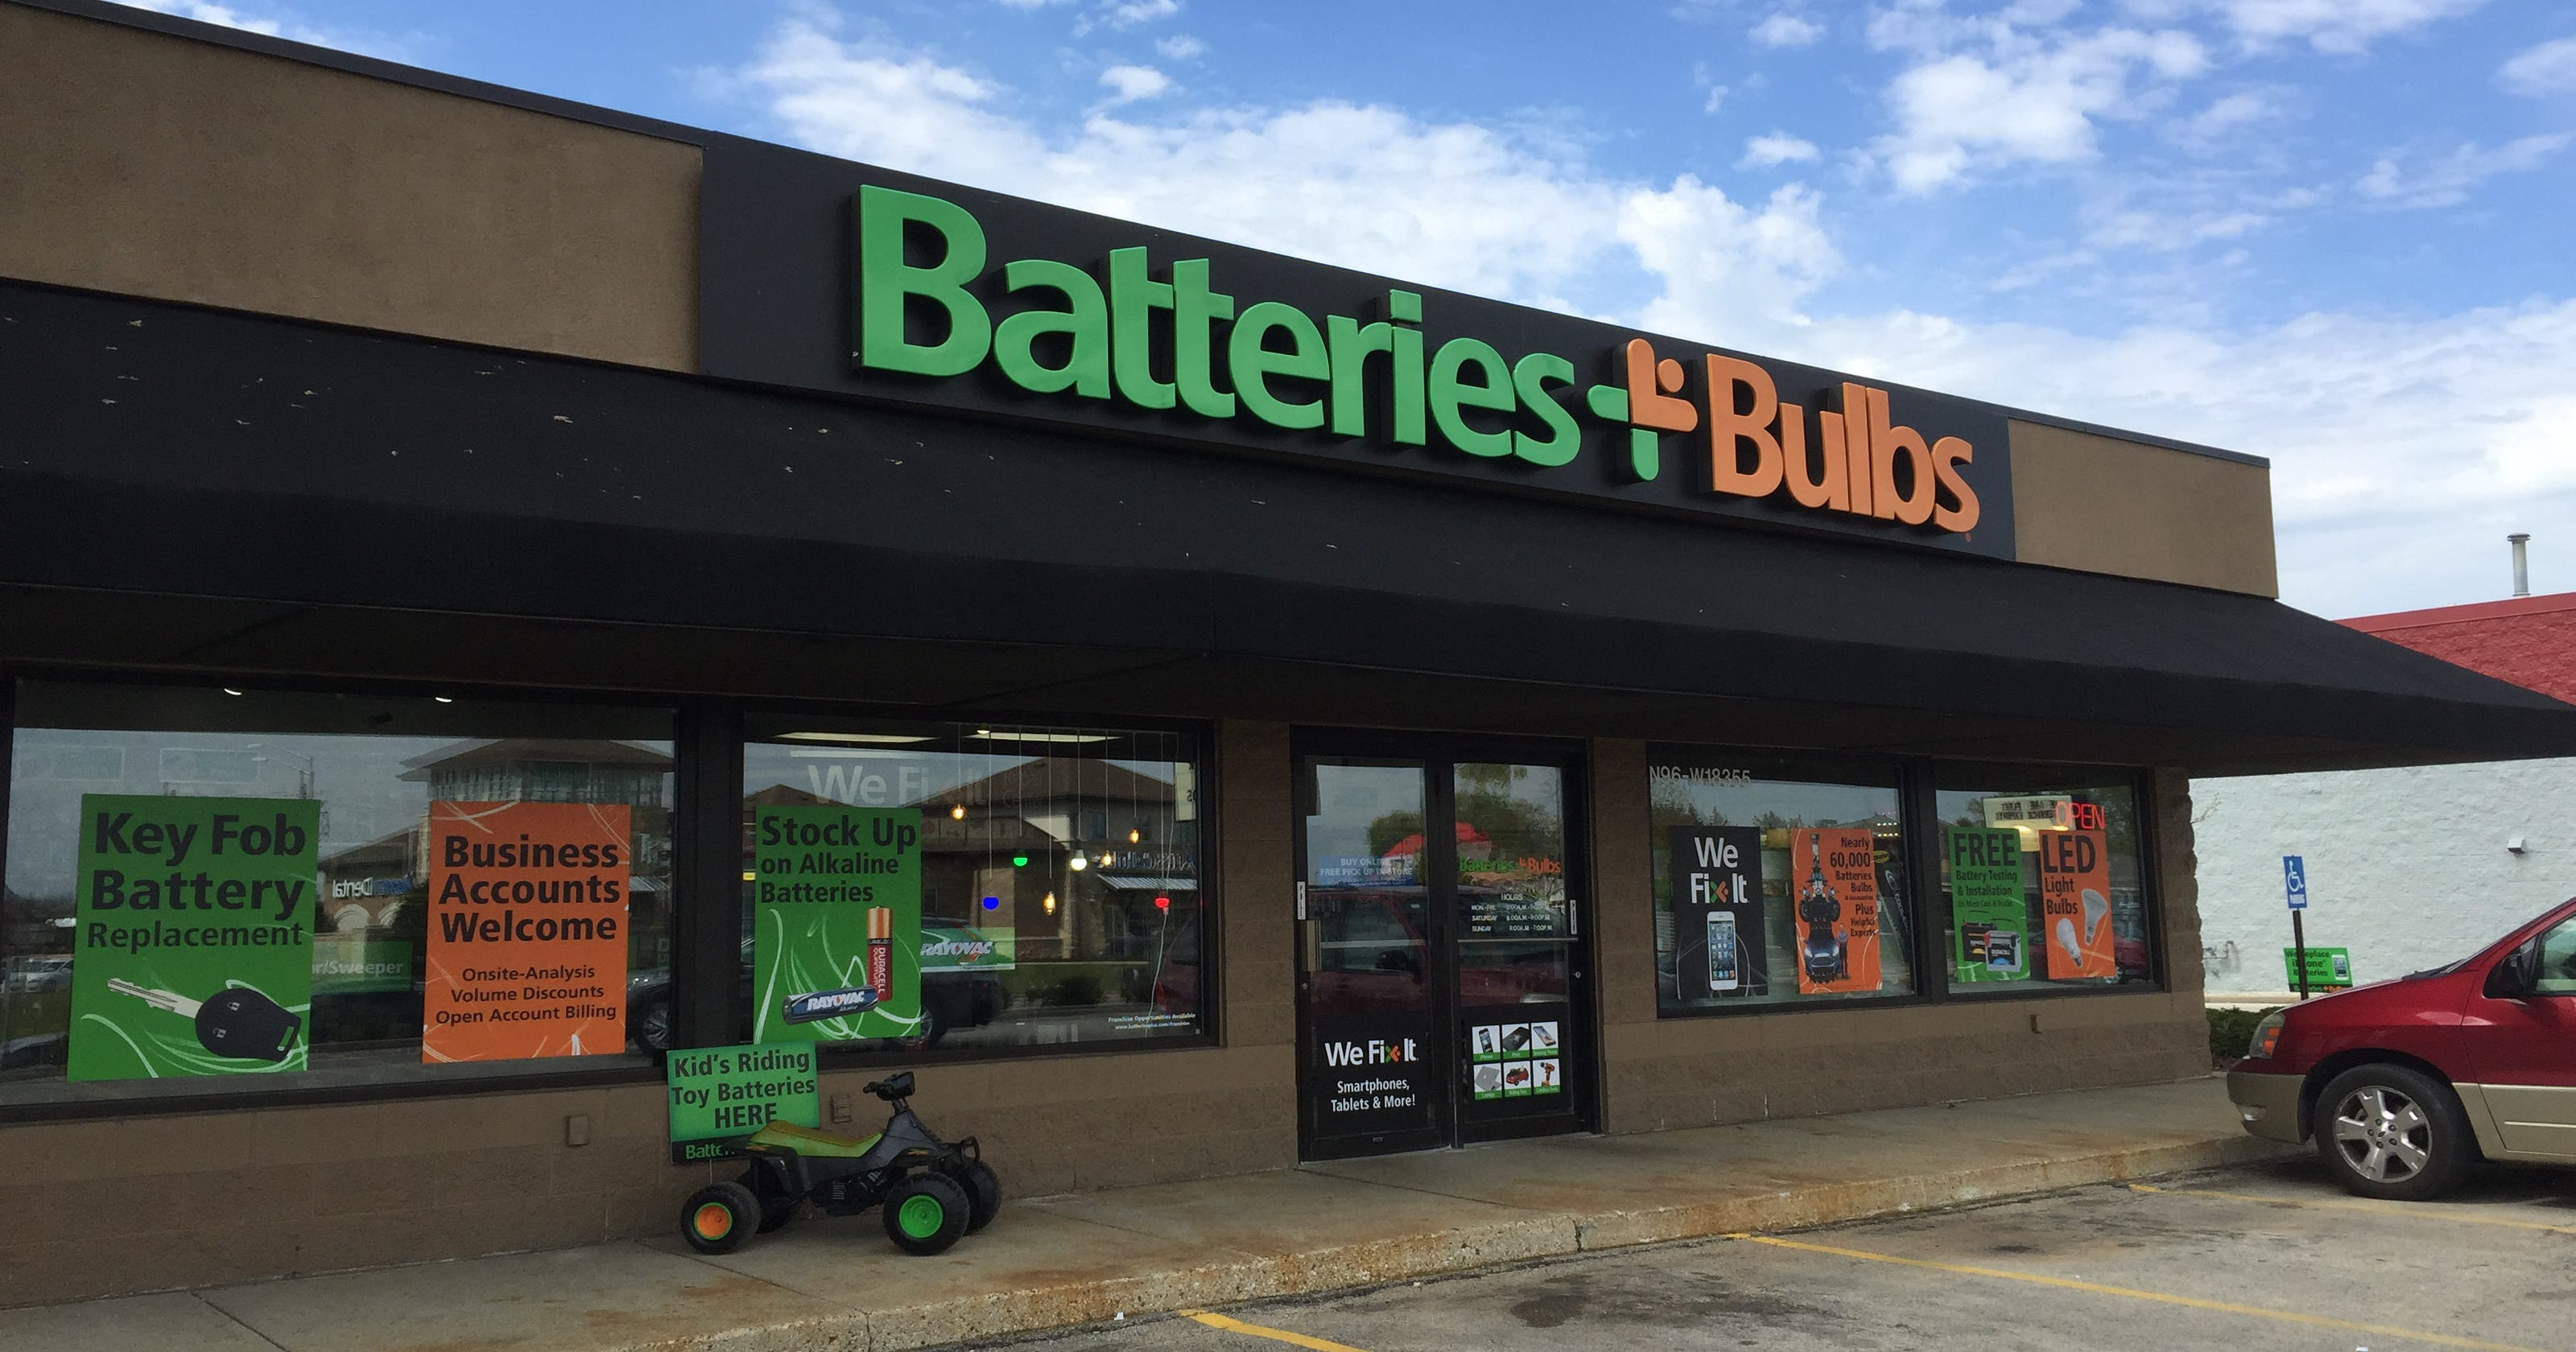 Batteries Plus Among Franchisers With Criticized No